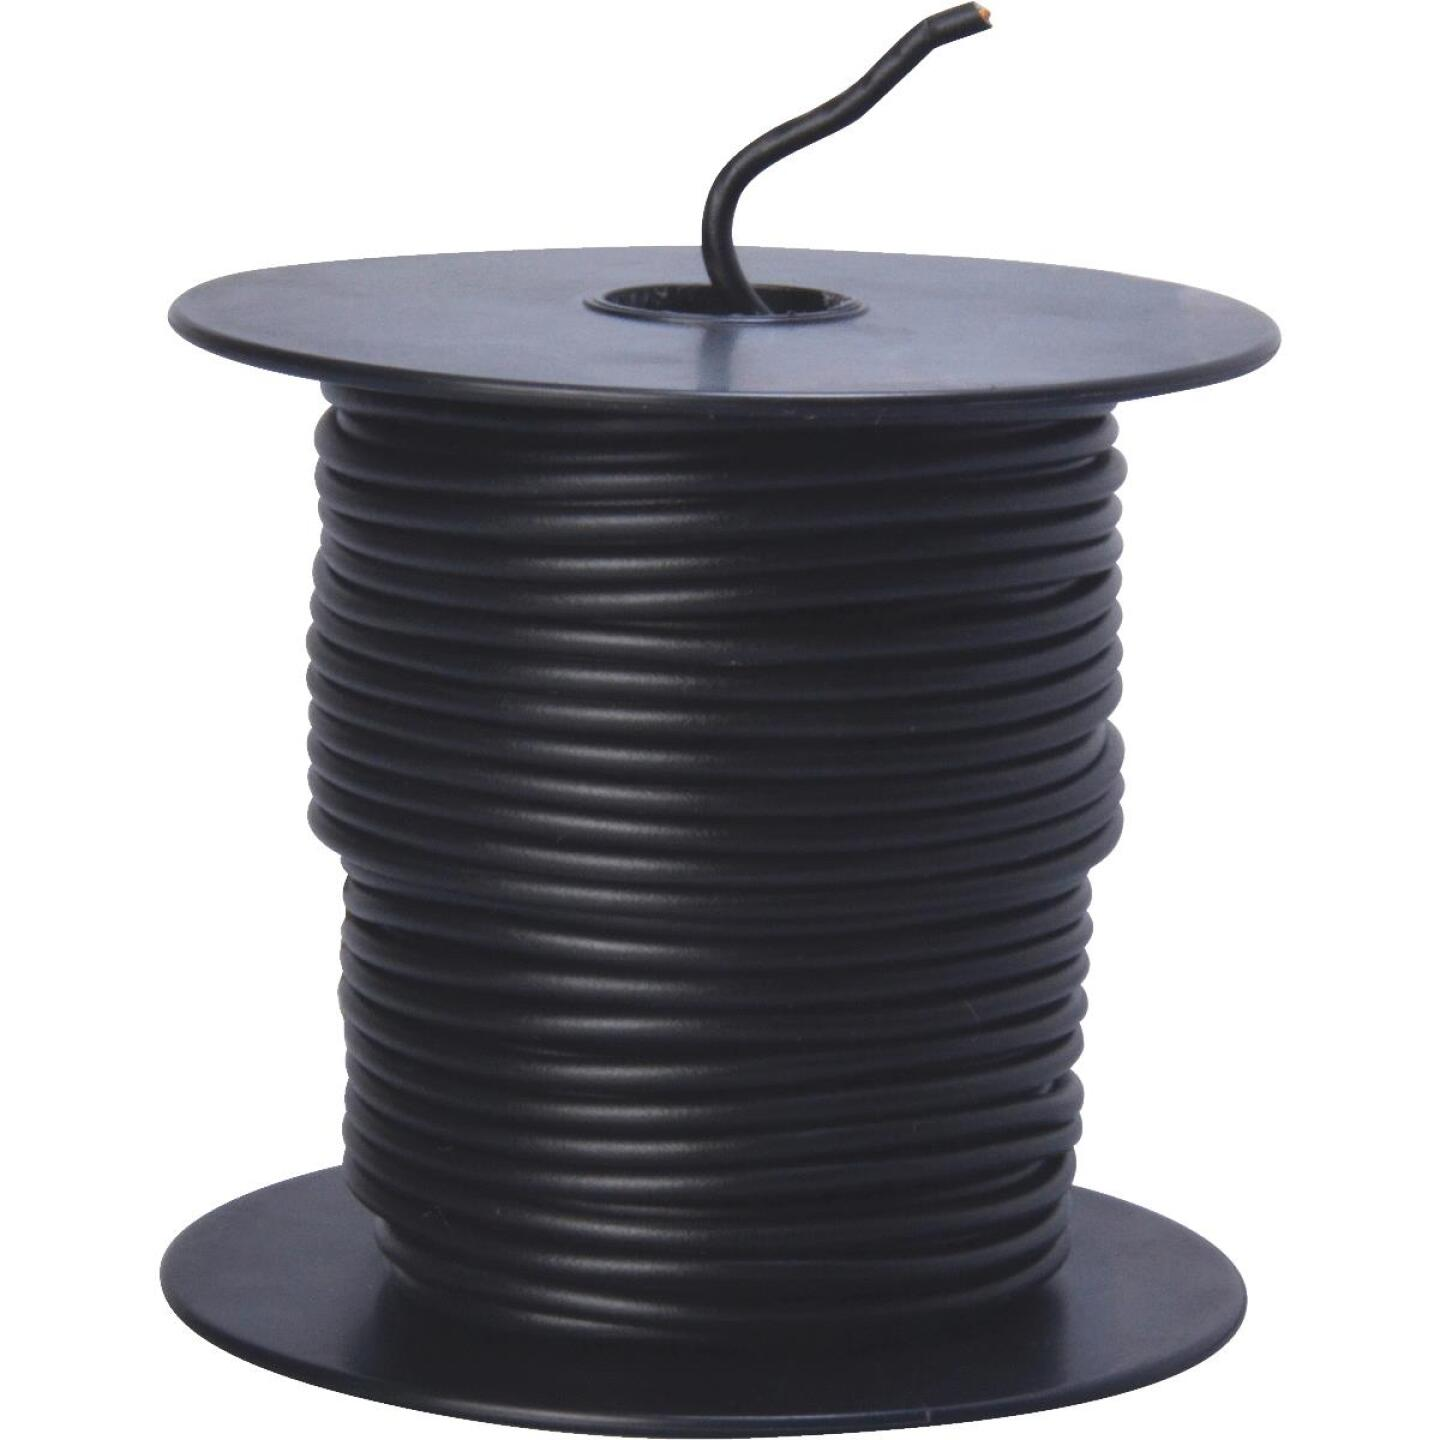 ROAD POWER 100 Ft. 16 Ga. PVC-Coated Primary Wire, Black Image 1